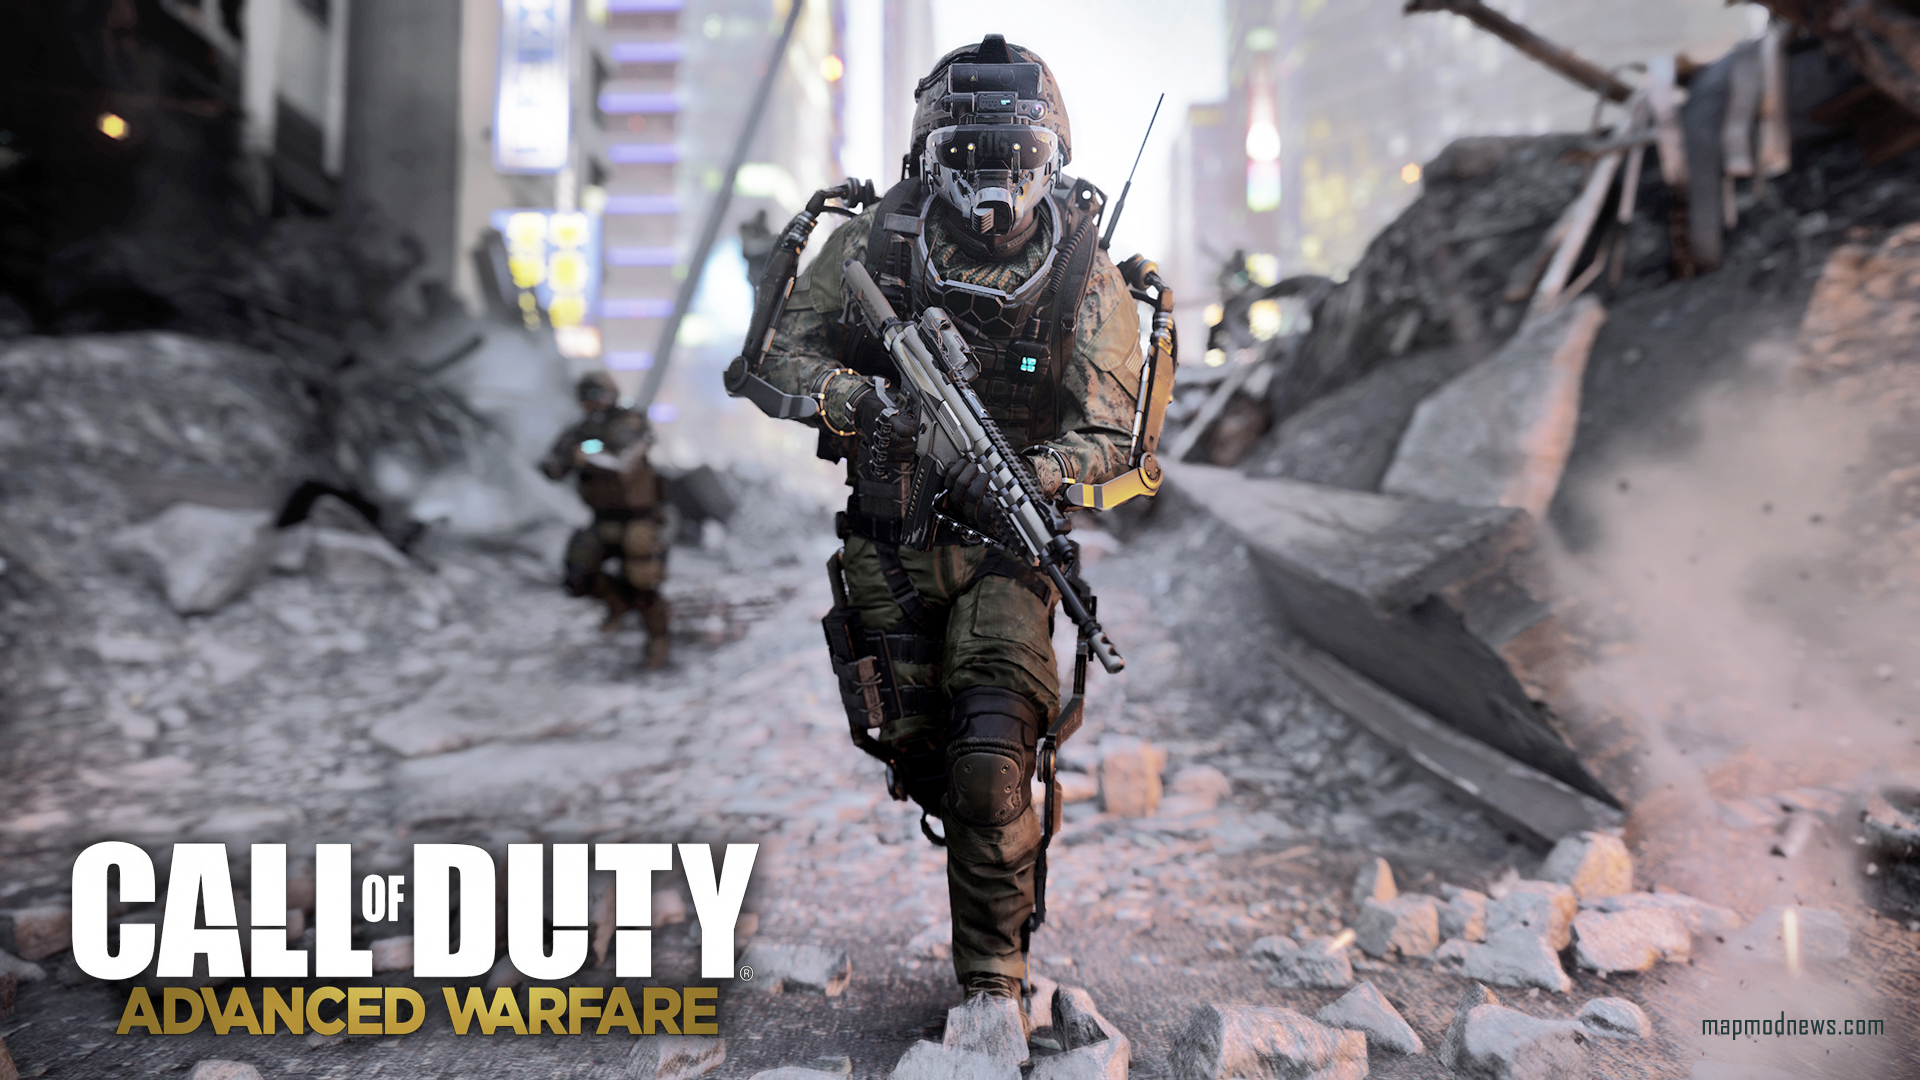 Call of Duty Advanced Warfare recommended PC system specs   Gadget 1920x1080